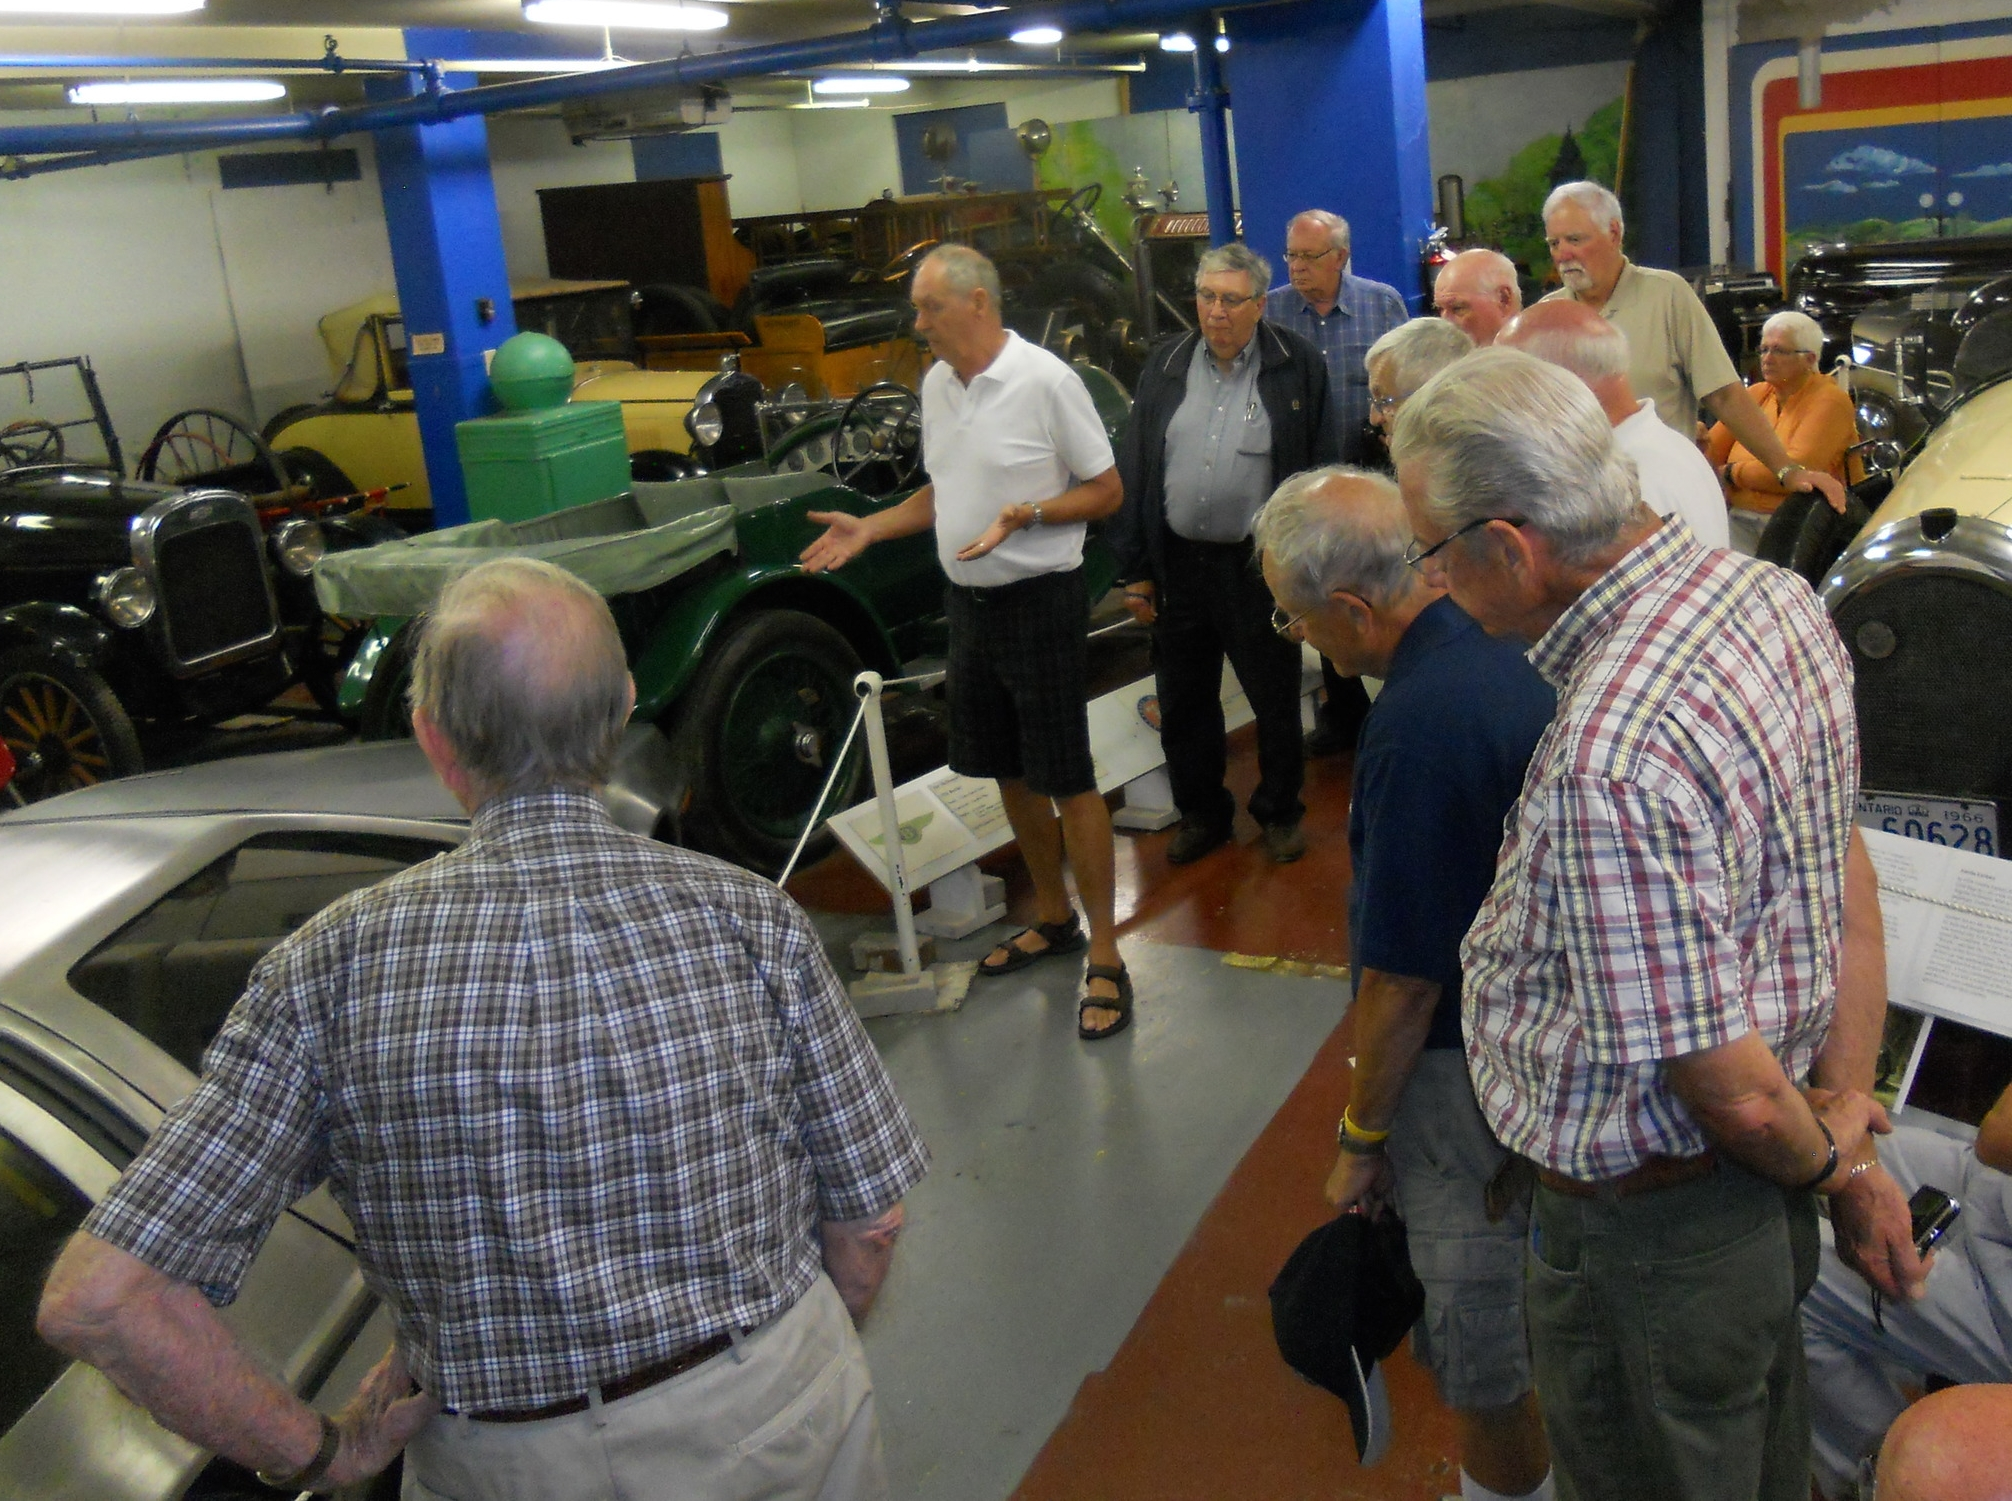 A volunteer tour guide giving a tour of the Canadian Automotive Museum galleries.